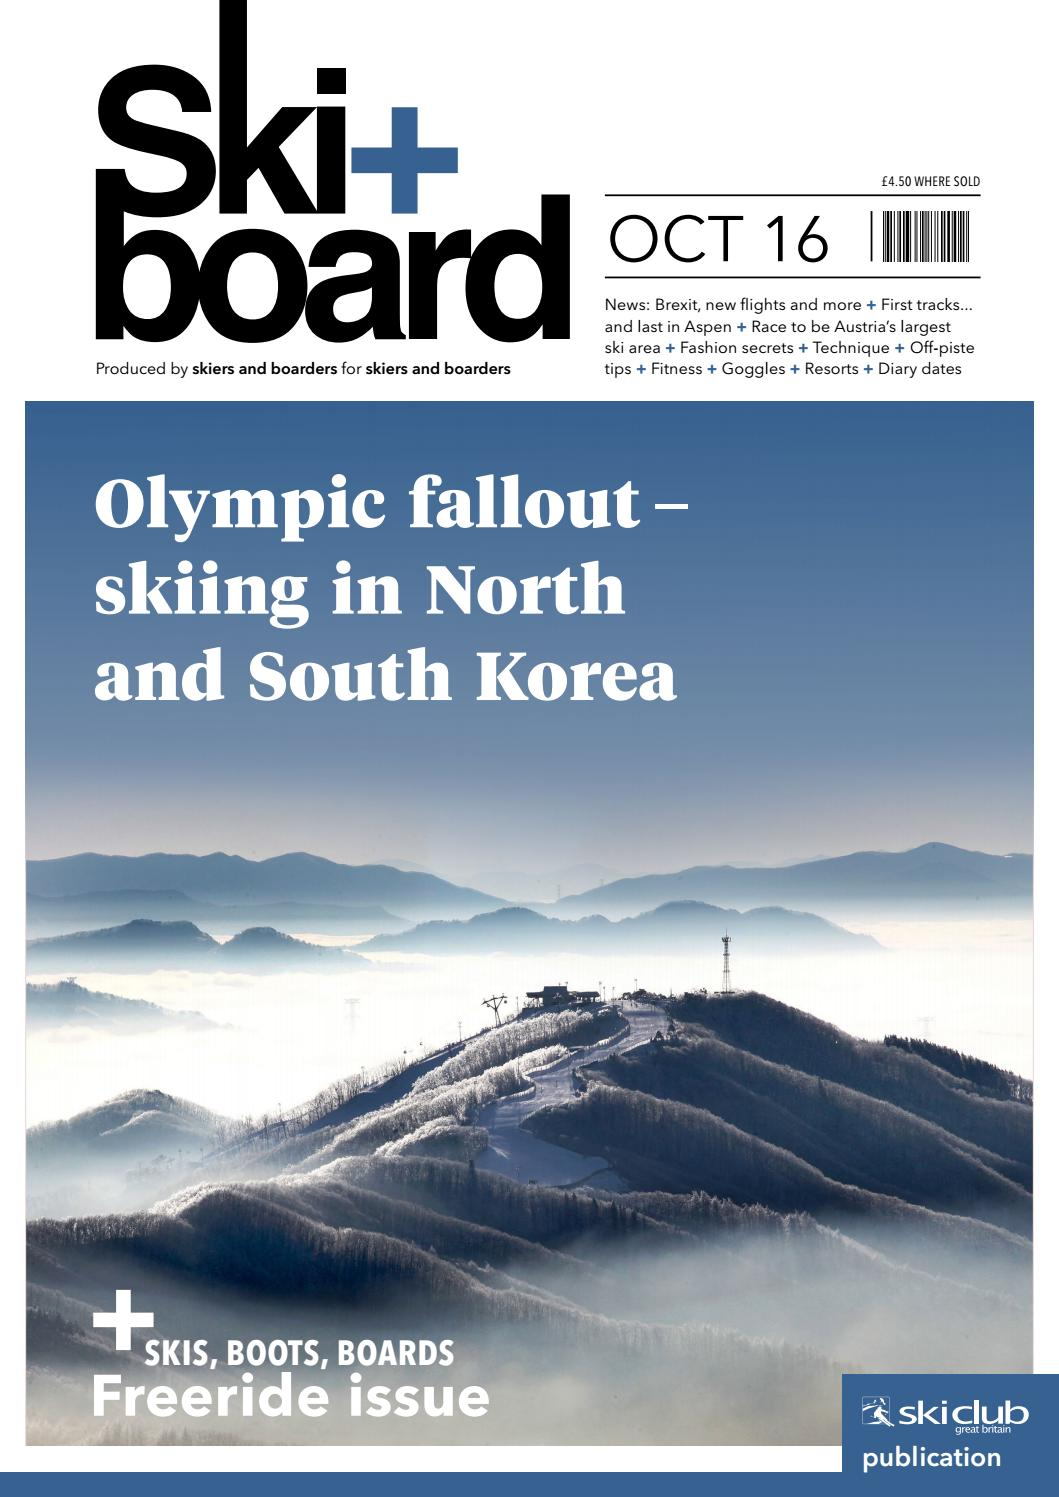 Ski+board October 2016 by Ski Club of Great Britain - issuu